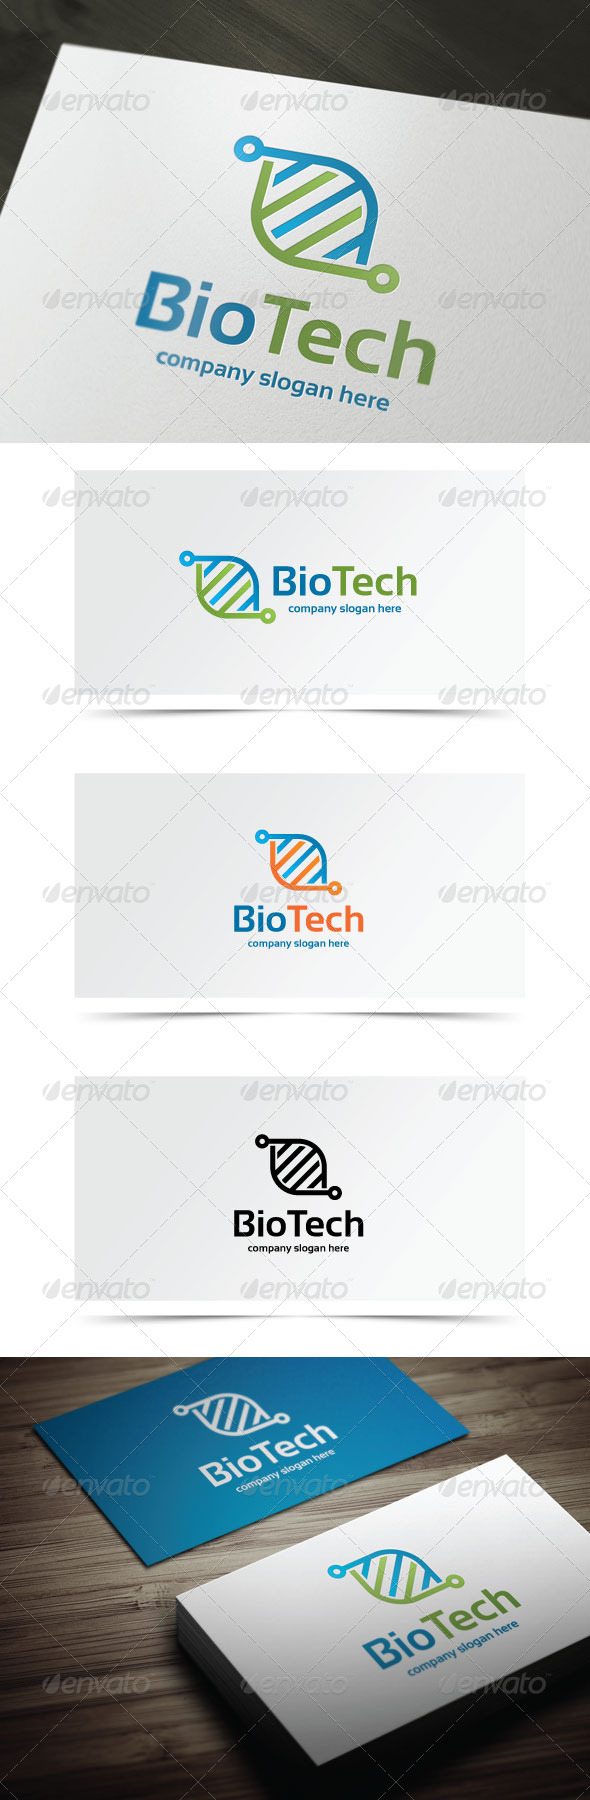 GraphicRiver Bio Tech 7841776